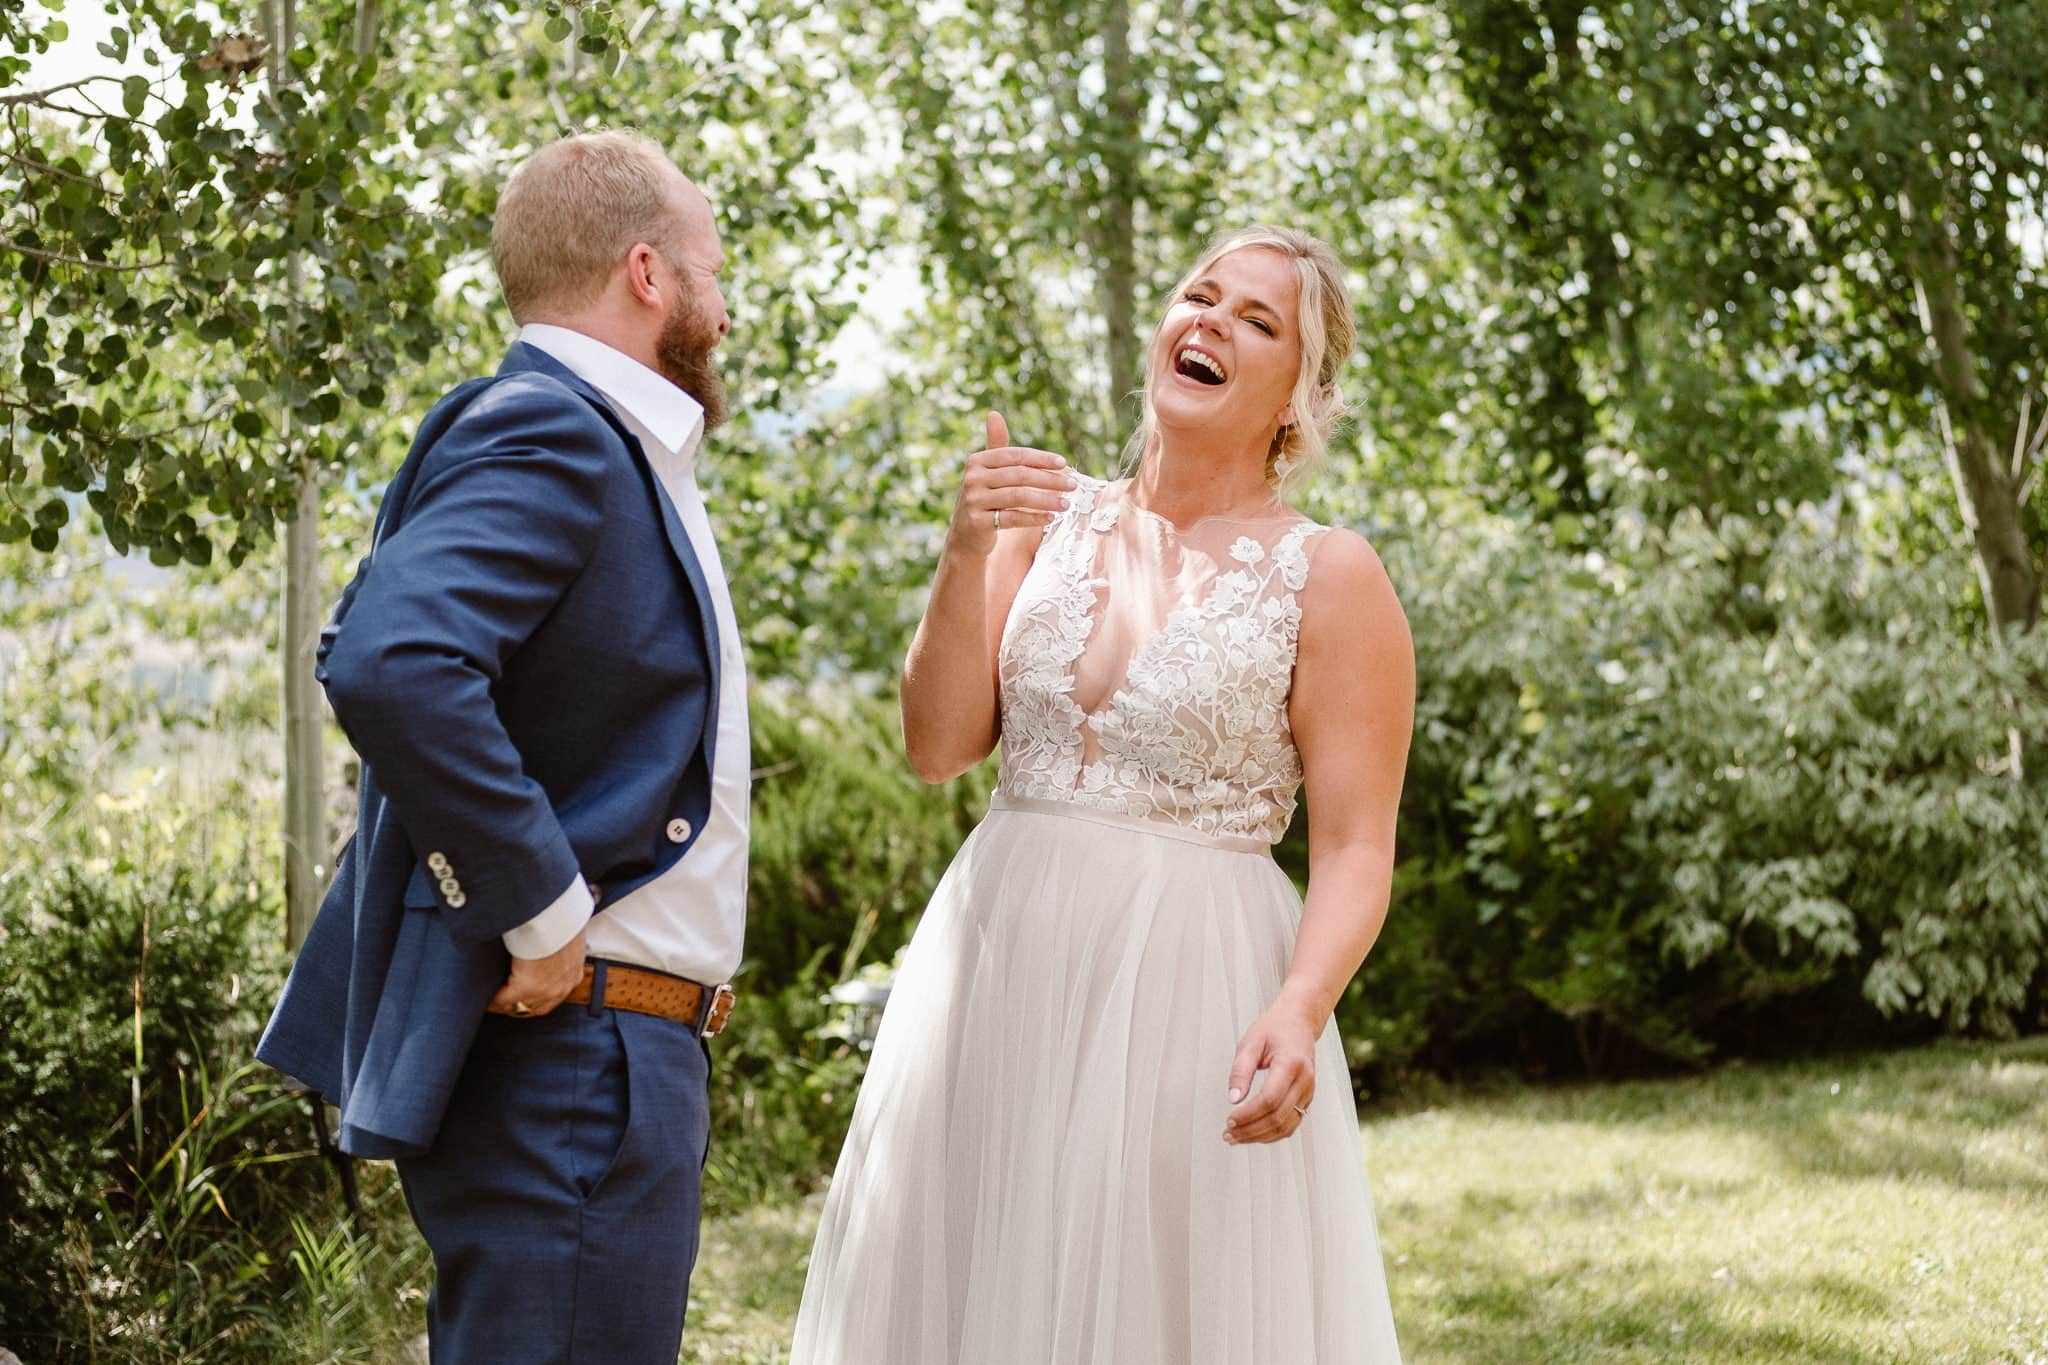 Steamboat Springs wedding photographer, La Joya Dulce wedding, Colorado ranch wedding venues, bride laughing at first look